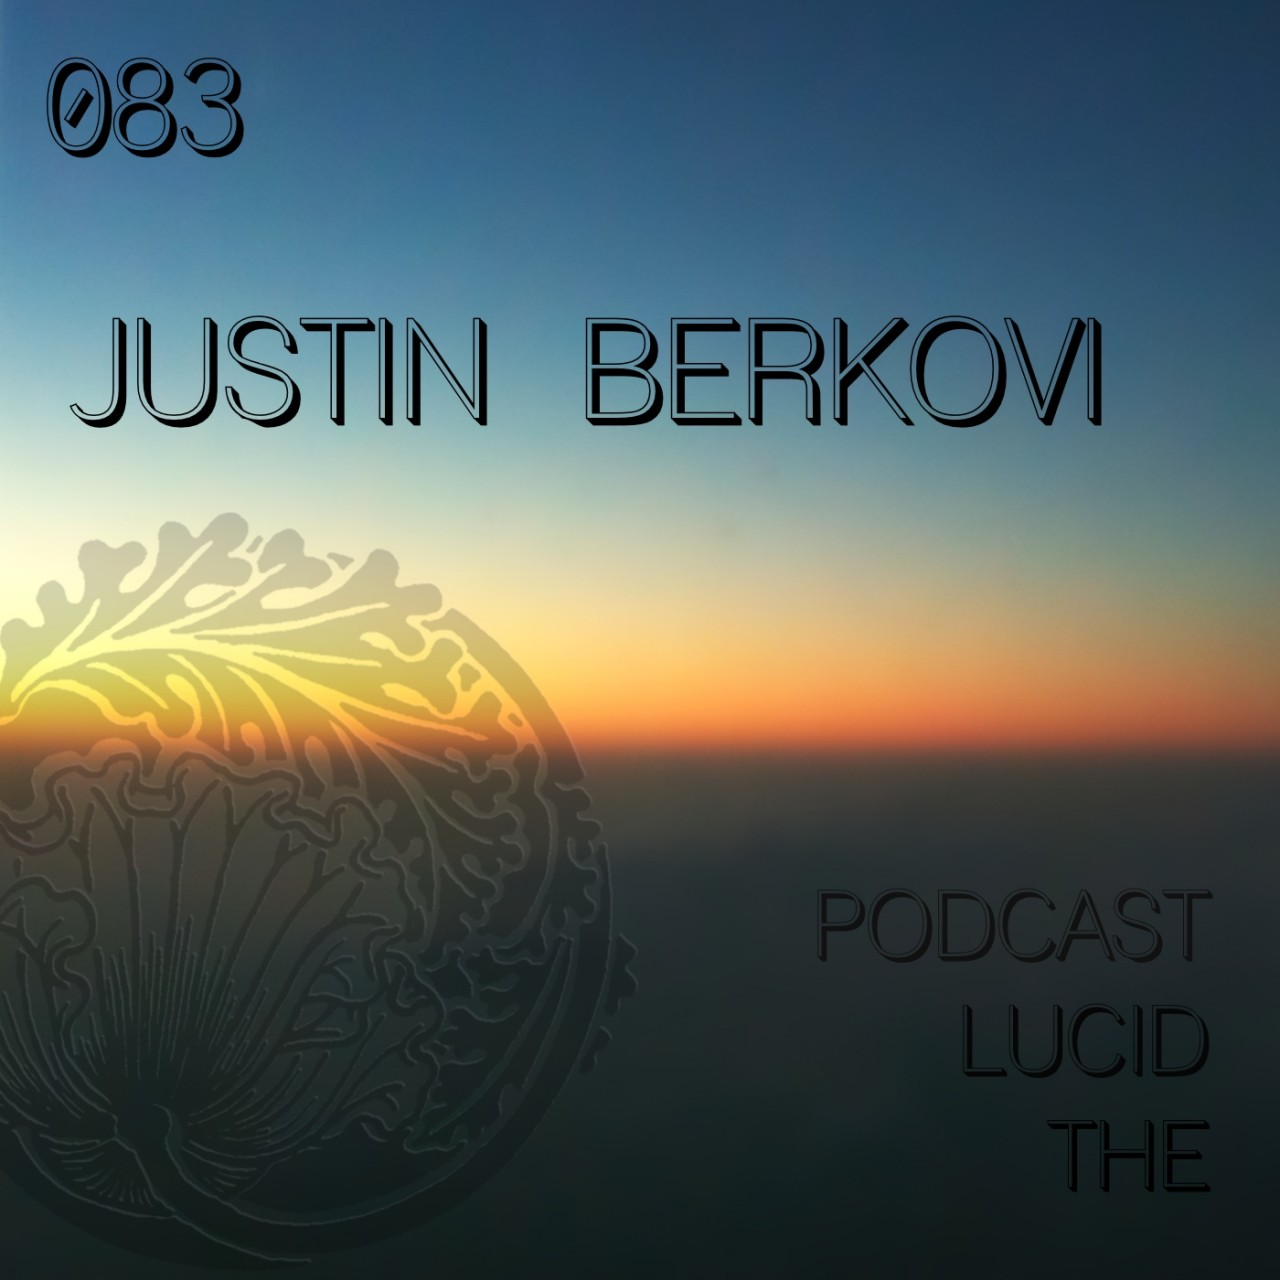 The Lucid Podcast 083 Justin Berkovi (live)